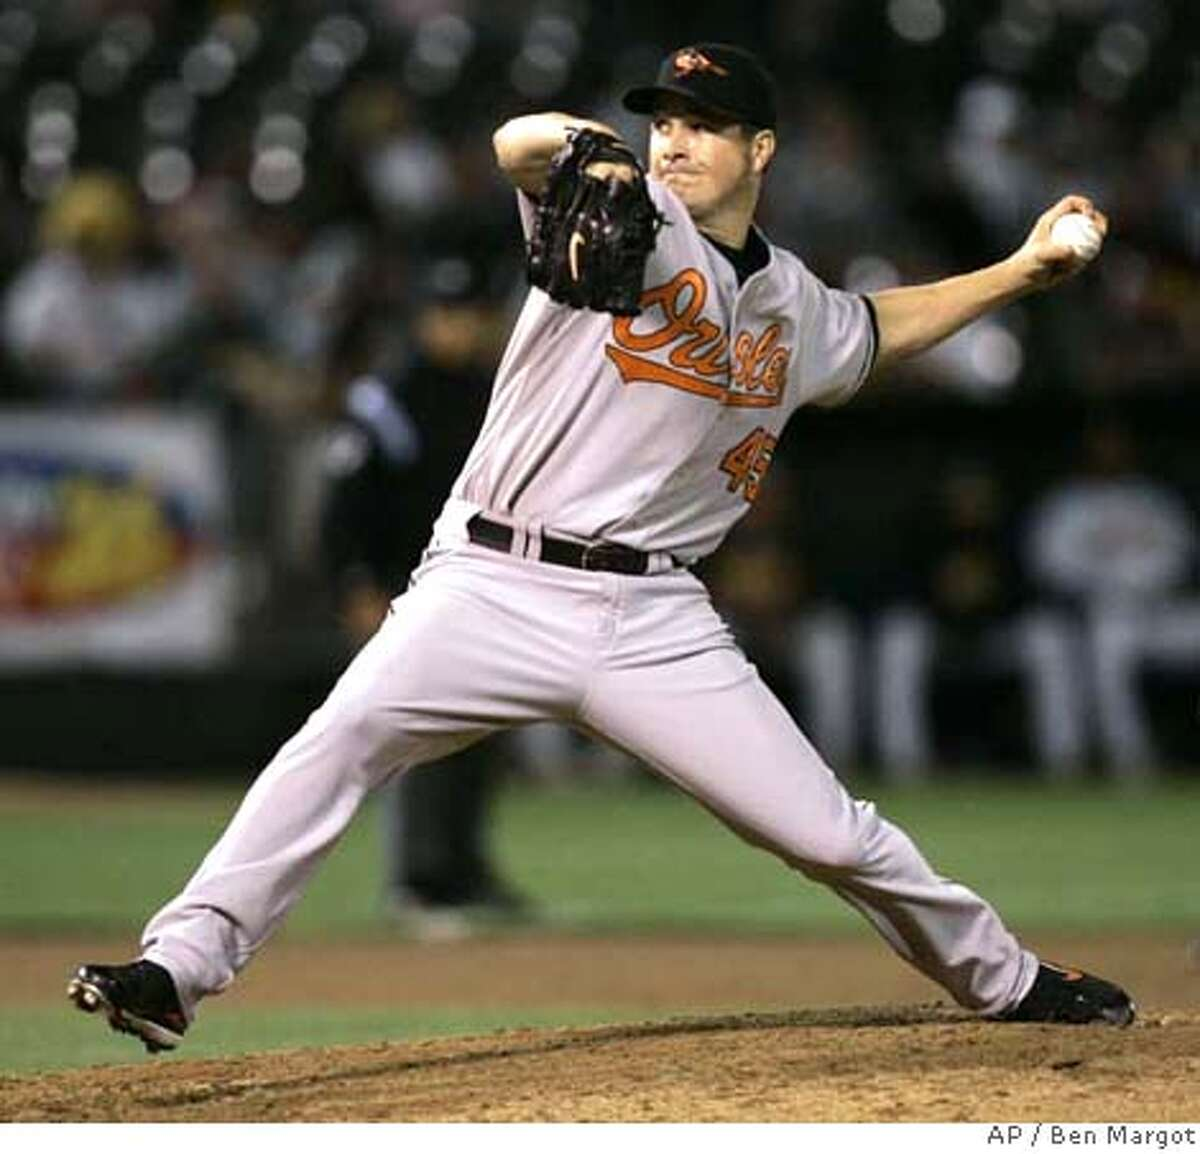 Baltimore Orioles' Erik Bedard works against the Oakland Athletics in the sixth inning of a baseball game Friday, July 20, 2007, in Oakland, Calif. (AP Photo/Ben Margot)